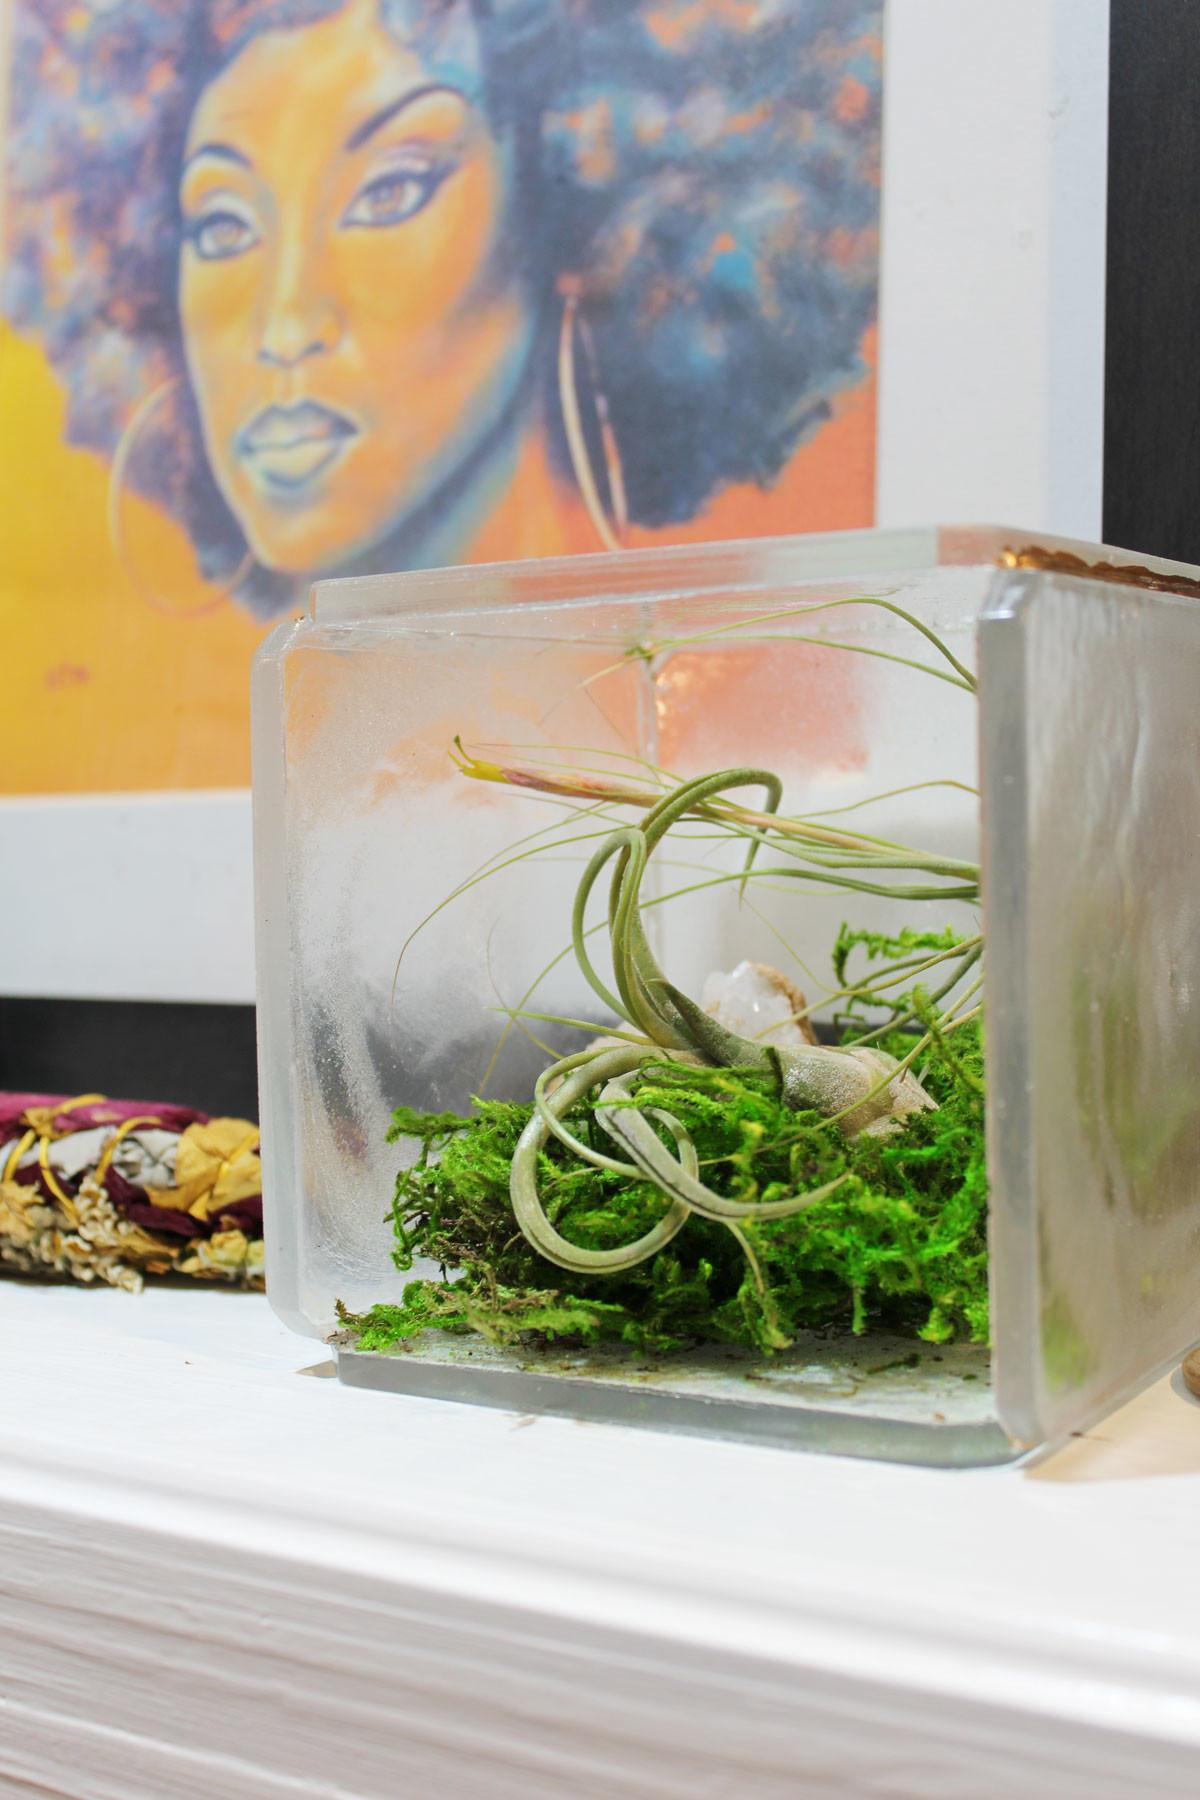 Diy Clear Resin Terrarium Tutorial Displaying Air Plants